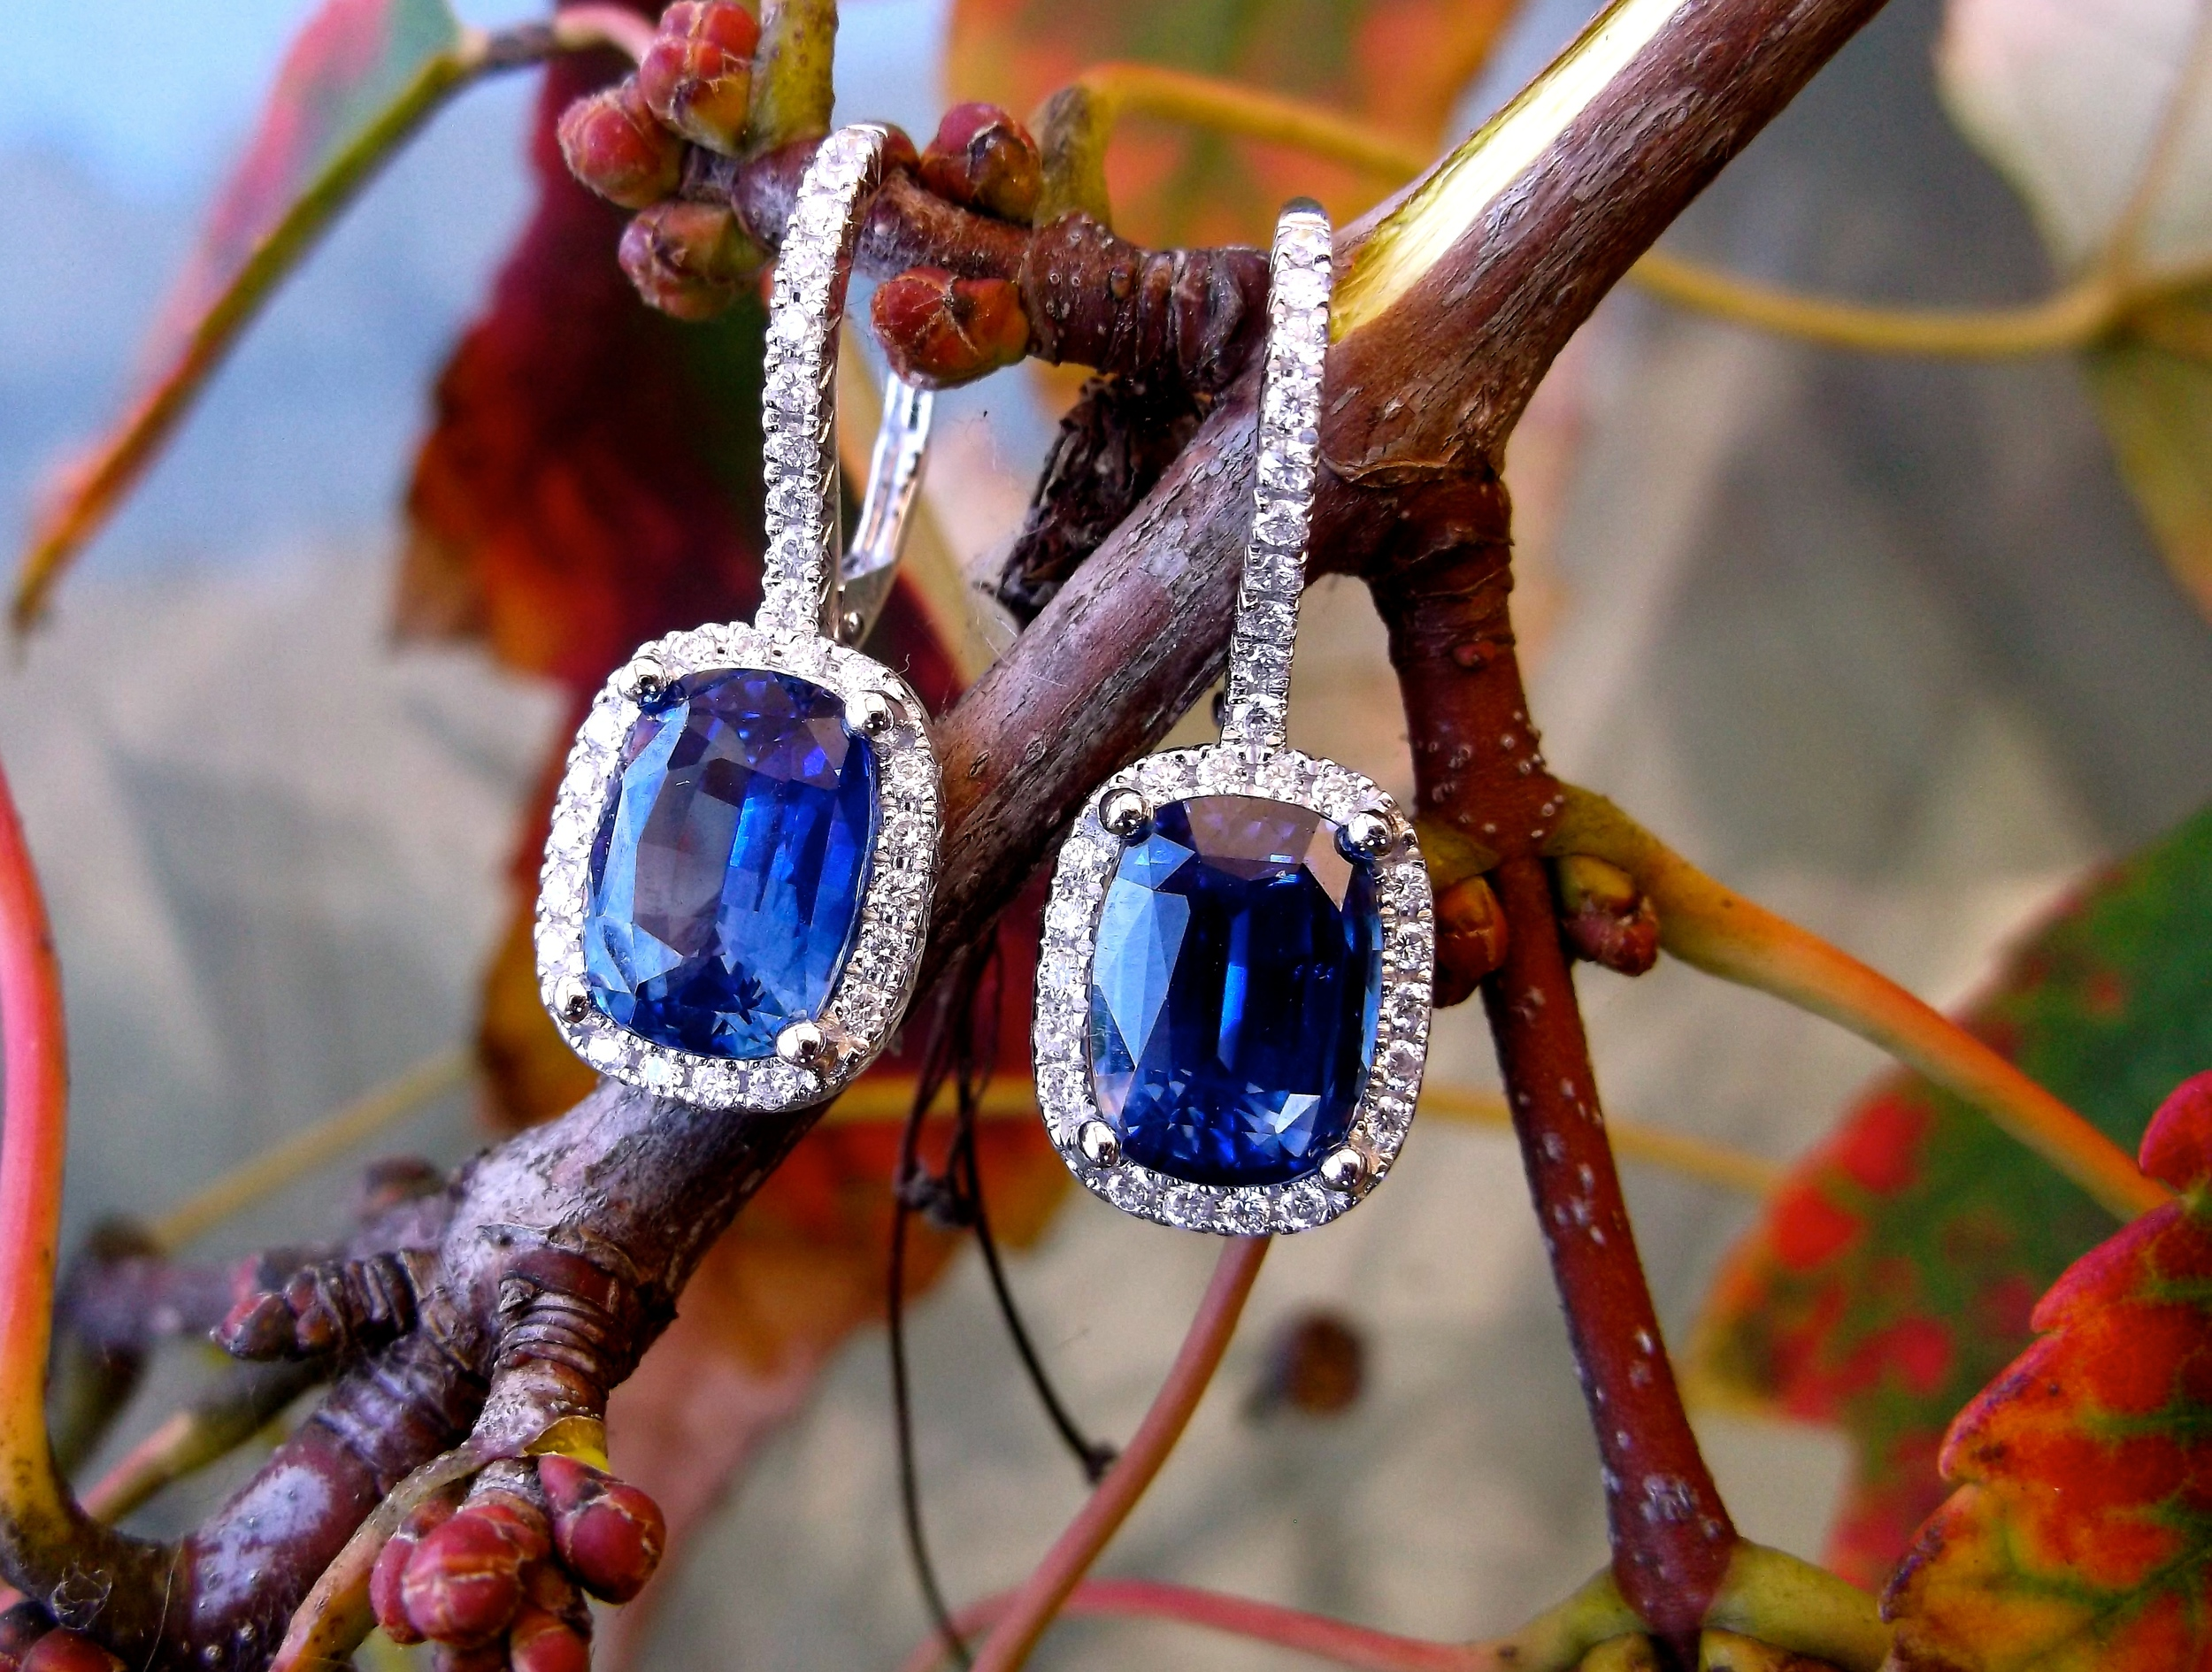 SOLD - Stunning sapphire and diamond earrings set in 18K white gold with 5.95 carats total weight in sapphires surrounded by 0.31 carats total weight in diamonds.